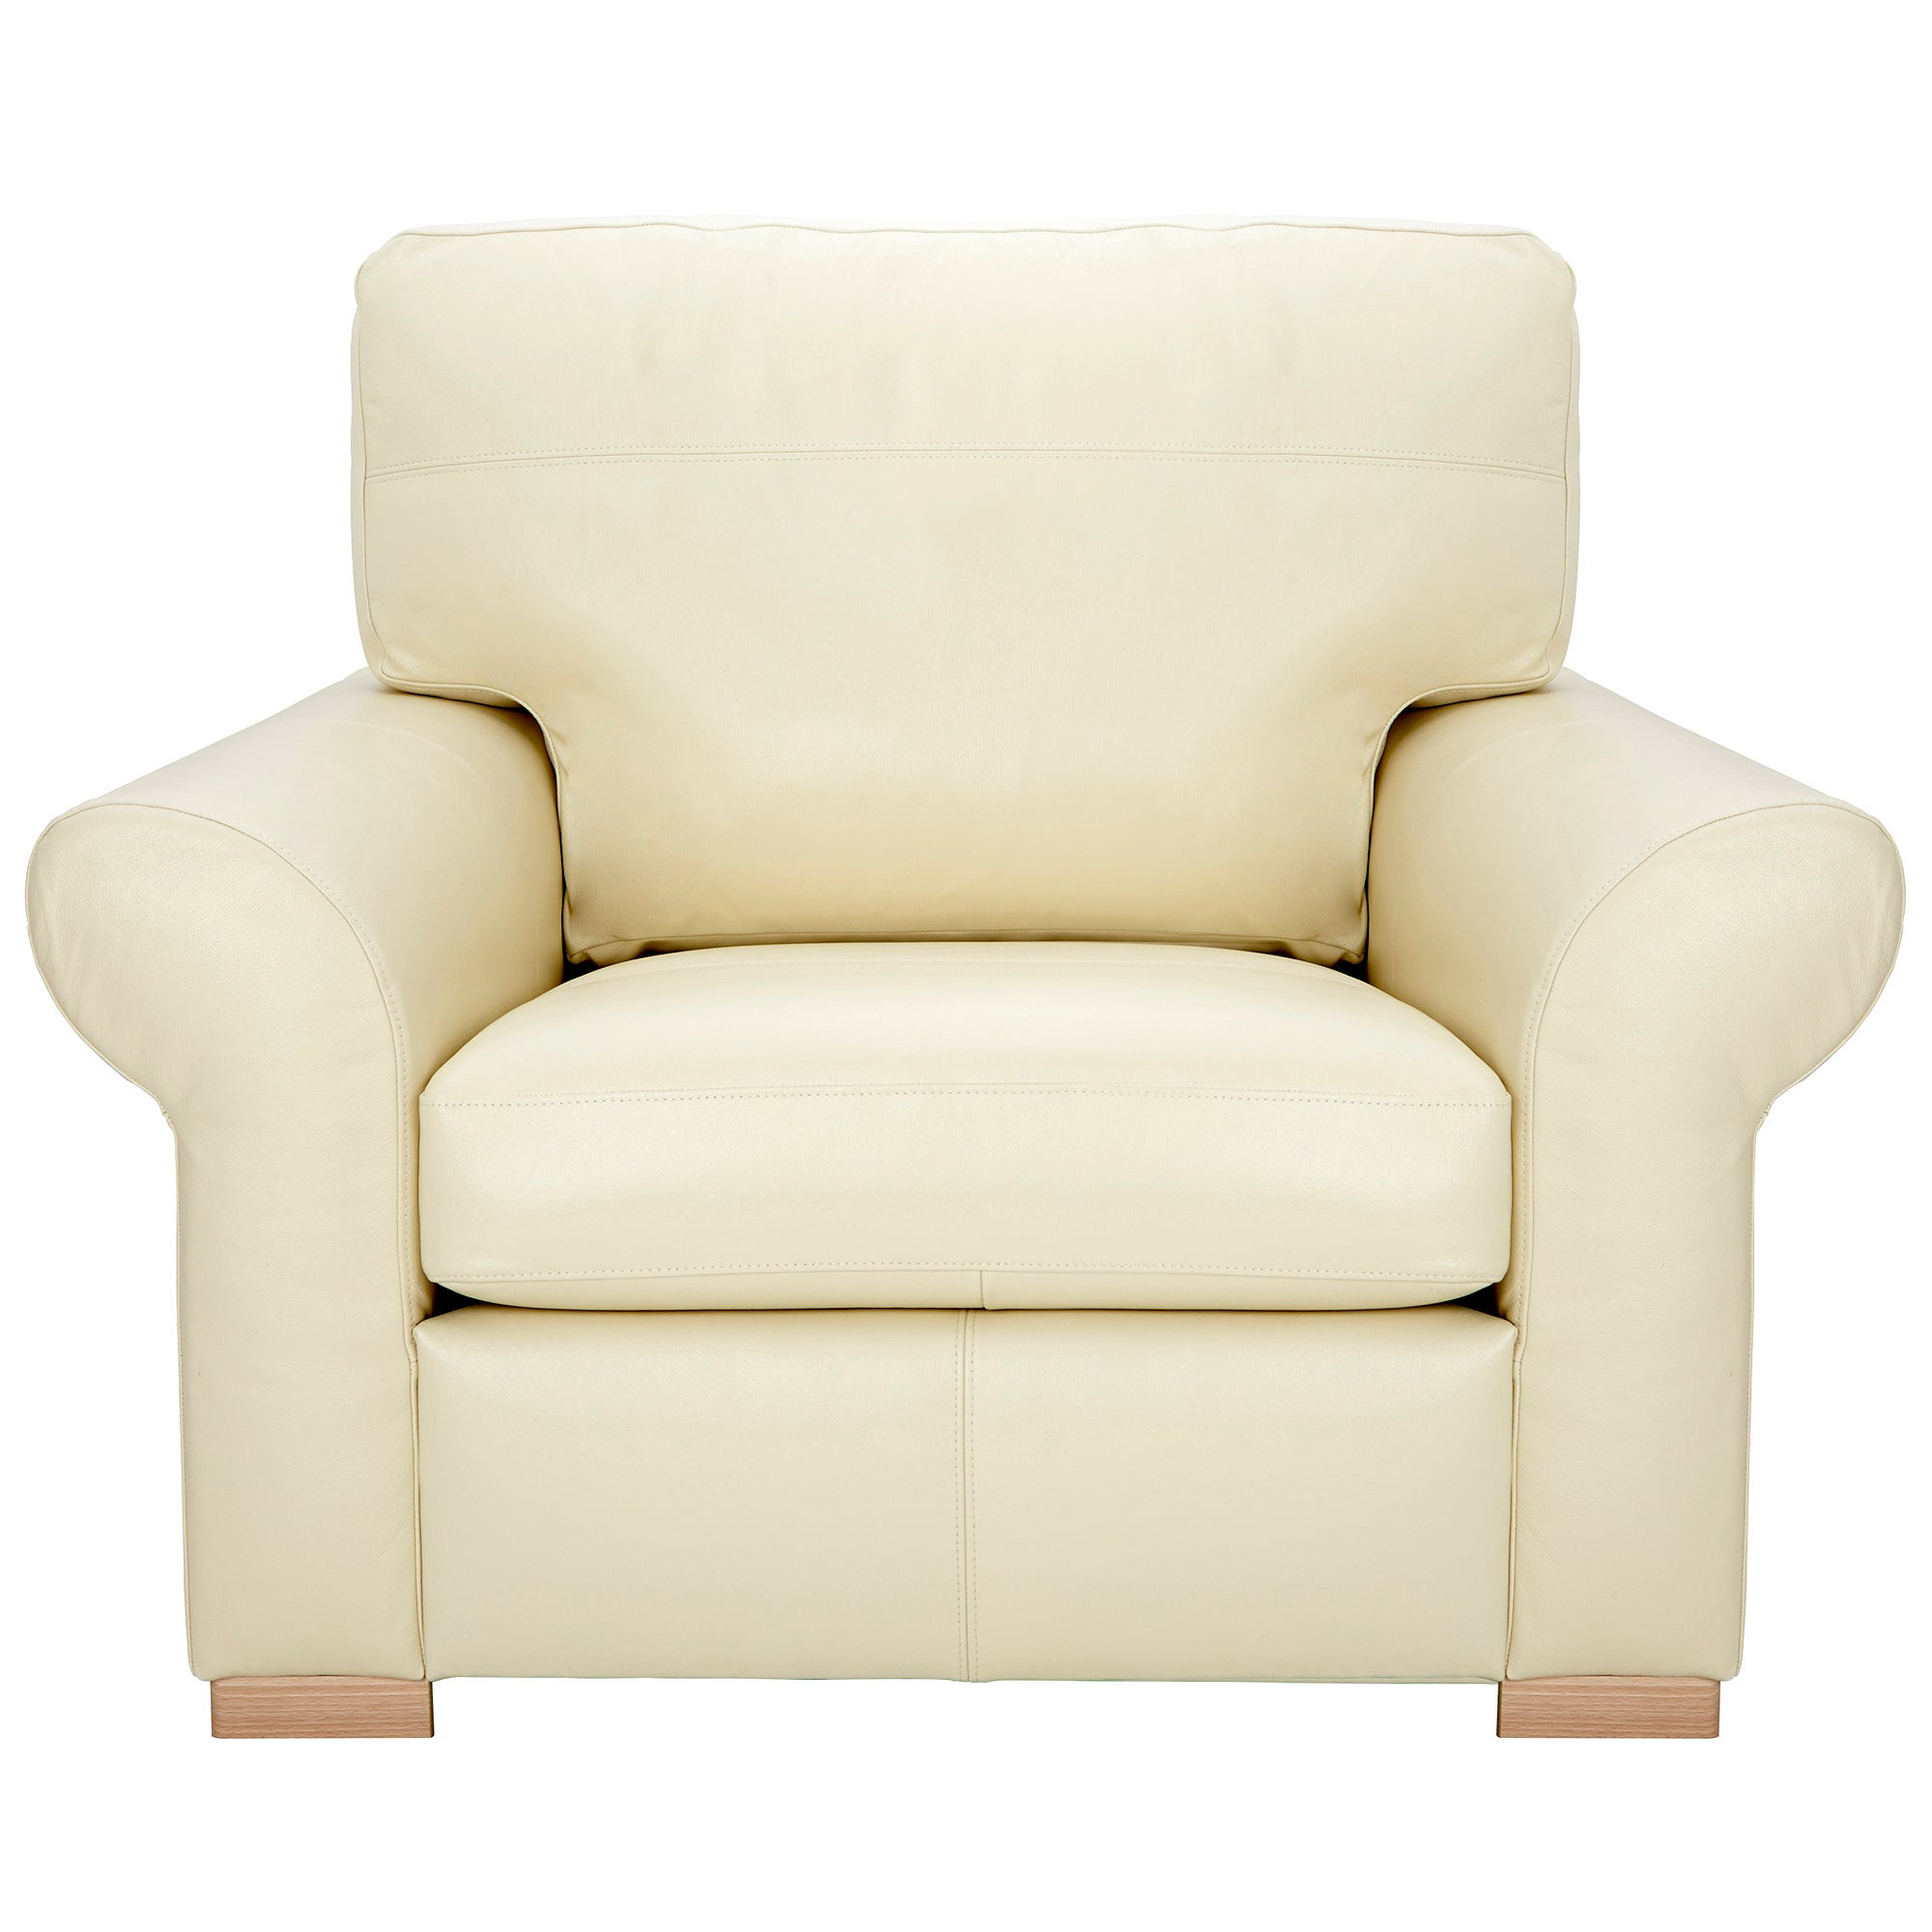 Finchley Collection Madras Leather Armchair